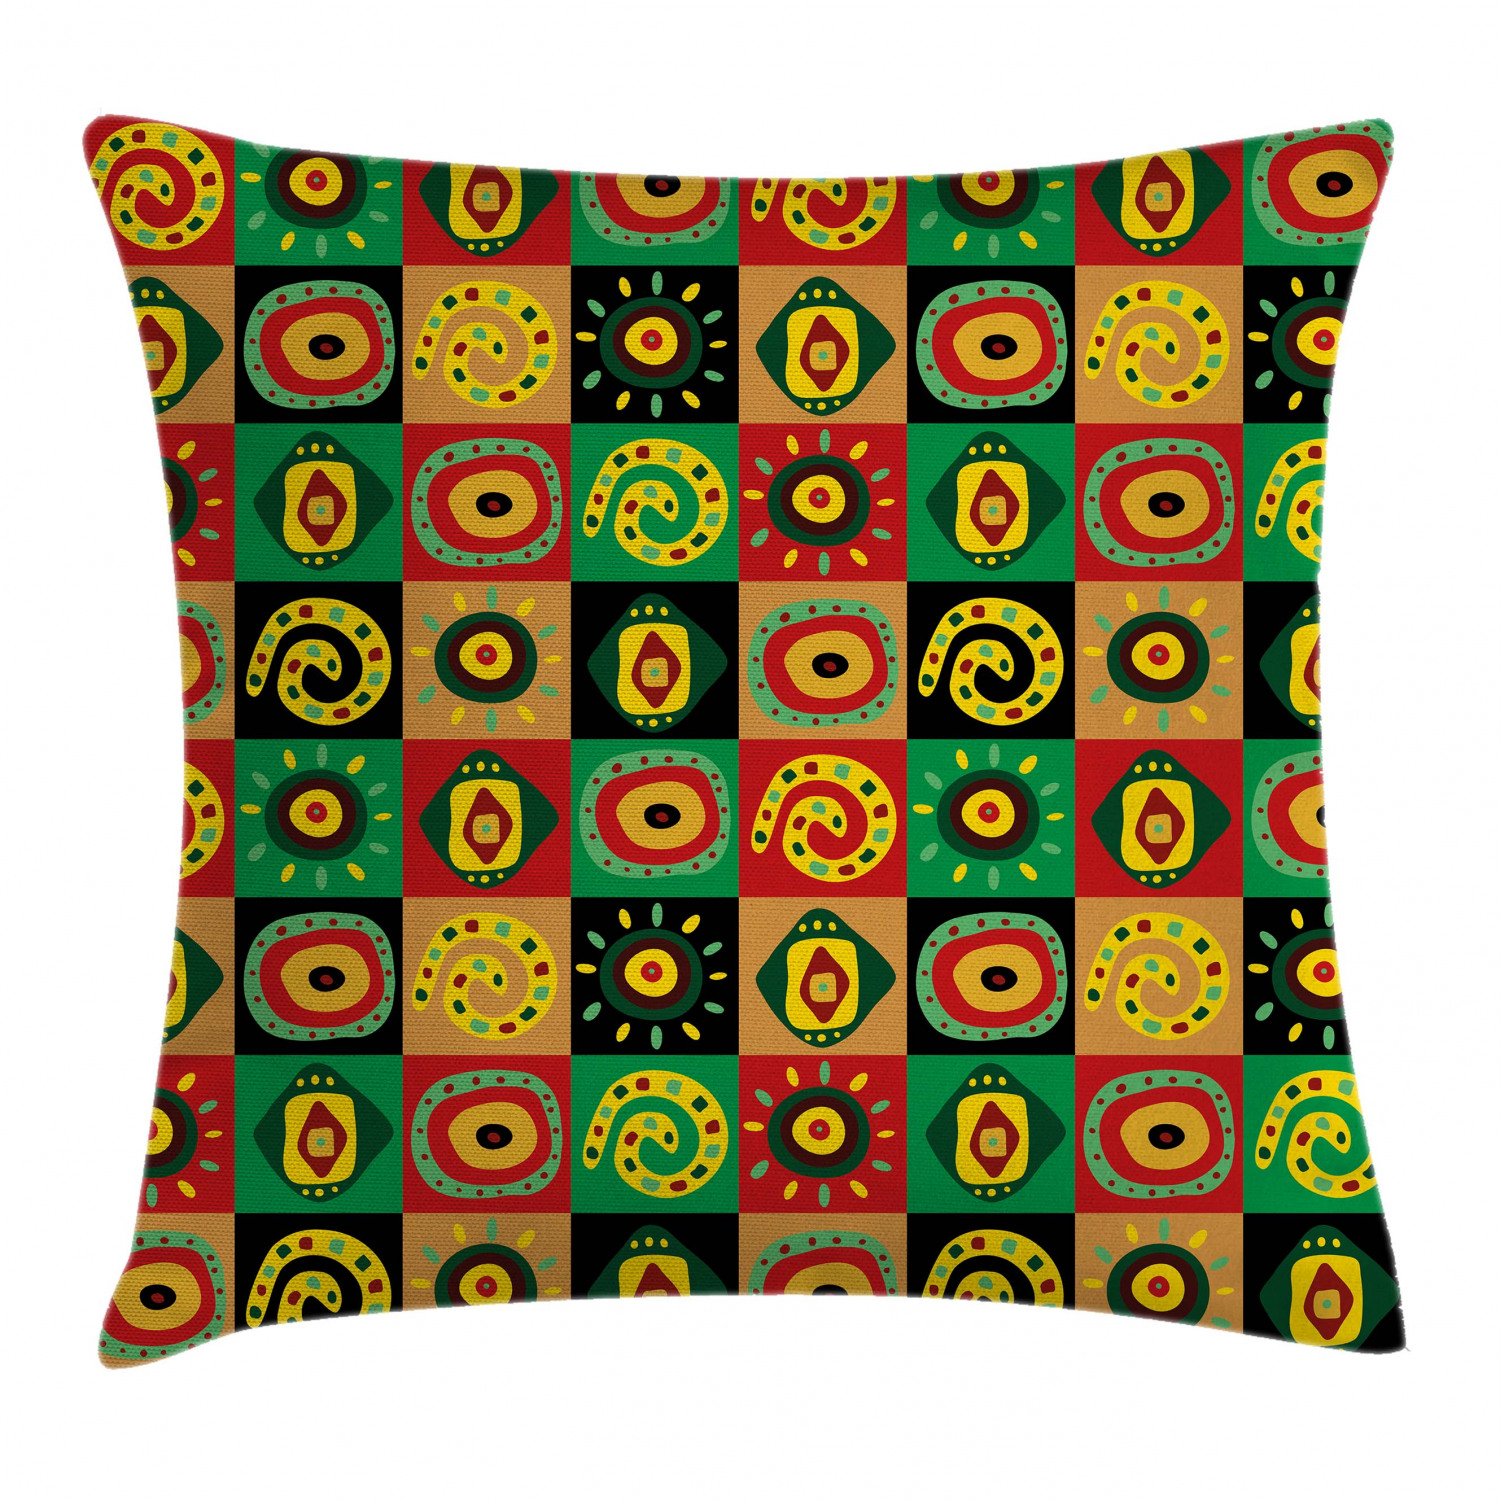 Modern Form Throw Pillow Cases Cushion Covers Home Decor 8 Sizes Ambesonne